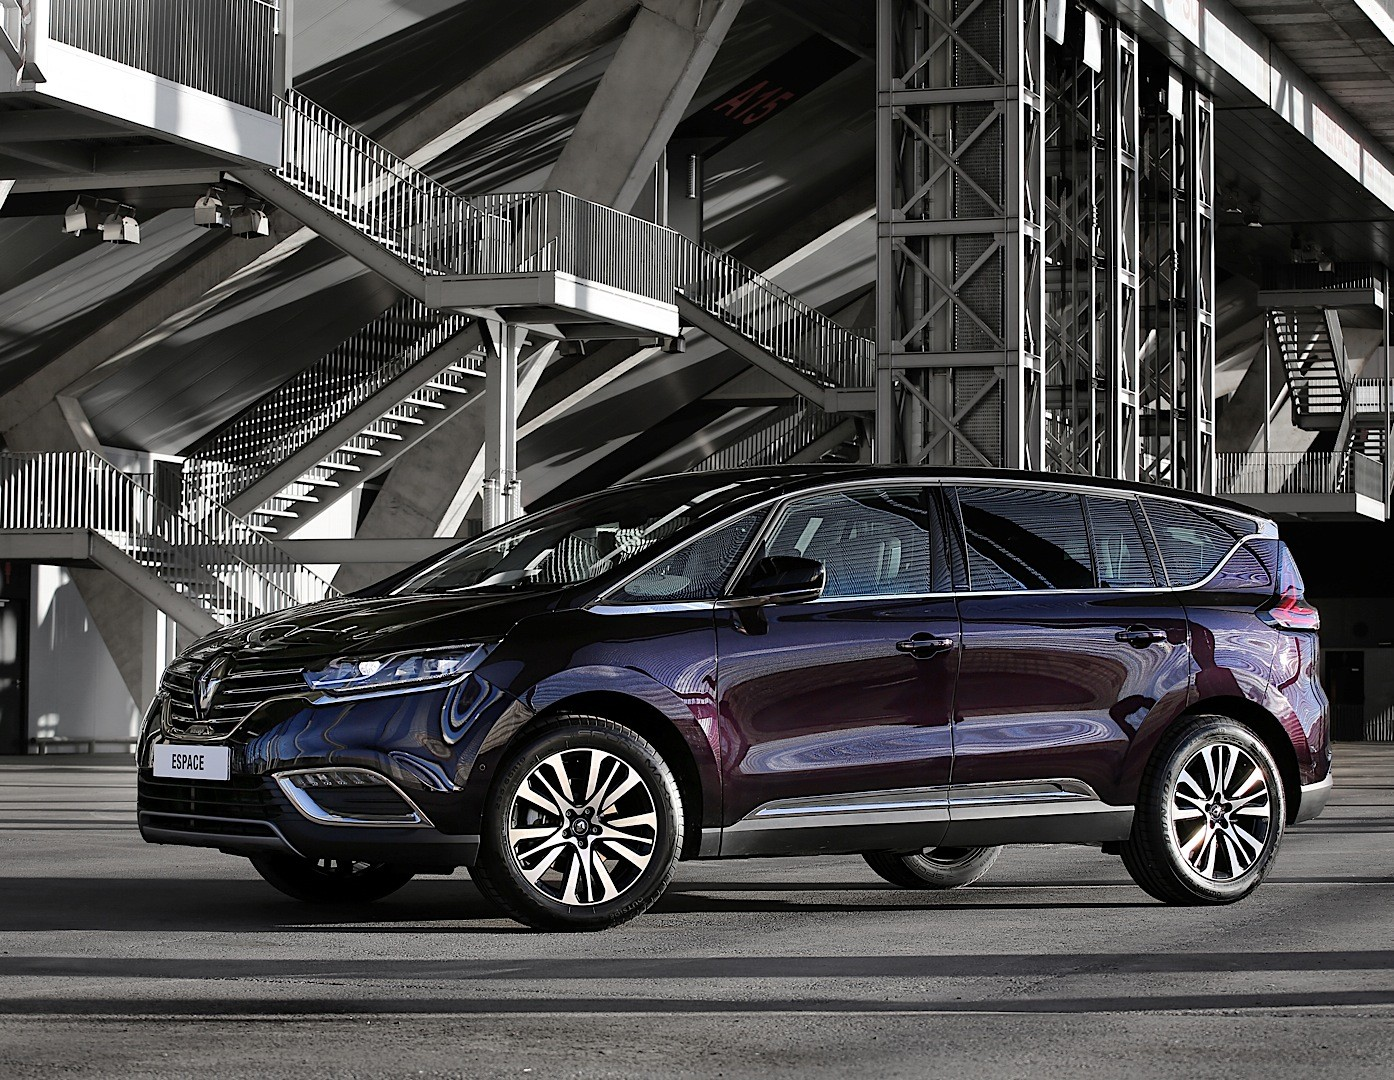 Reno Calendar May : Renault espace looks stunning in dark amethyst